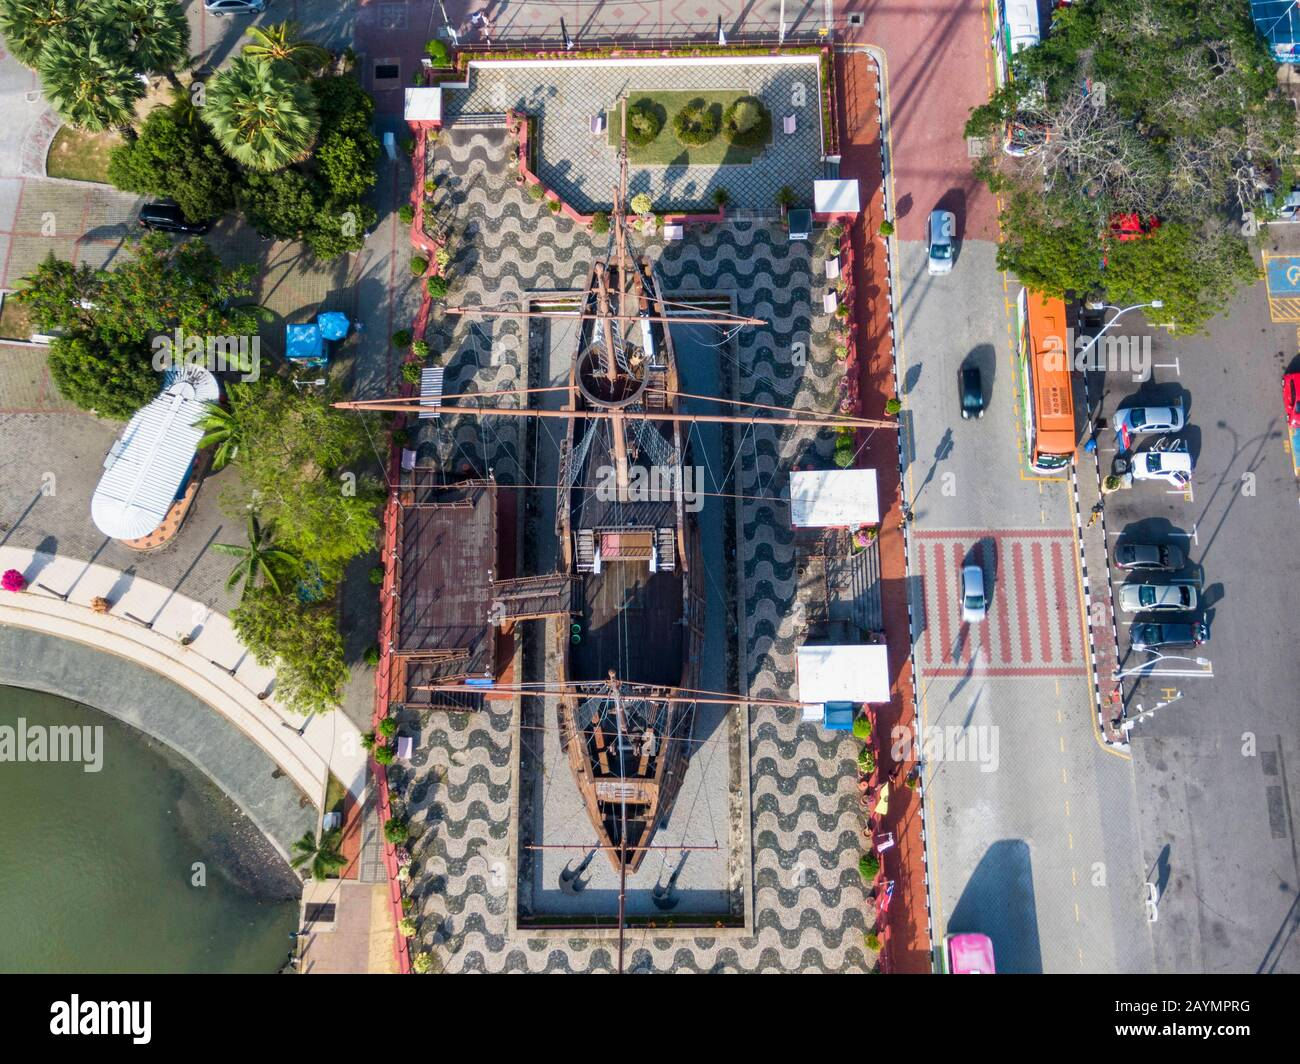 Aerial view of  Flor de la Mar a replica of a Portuguese ship at the Maritime Museum in Malacca (Melaka), Malaysia. Stock Photo